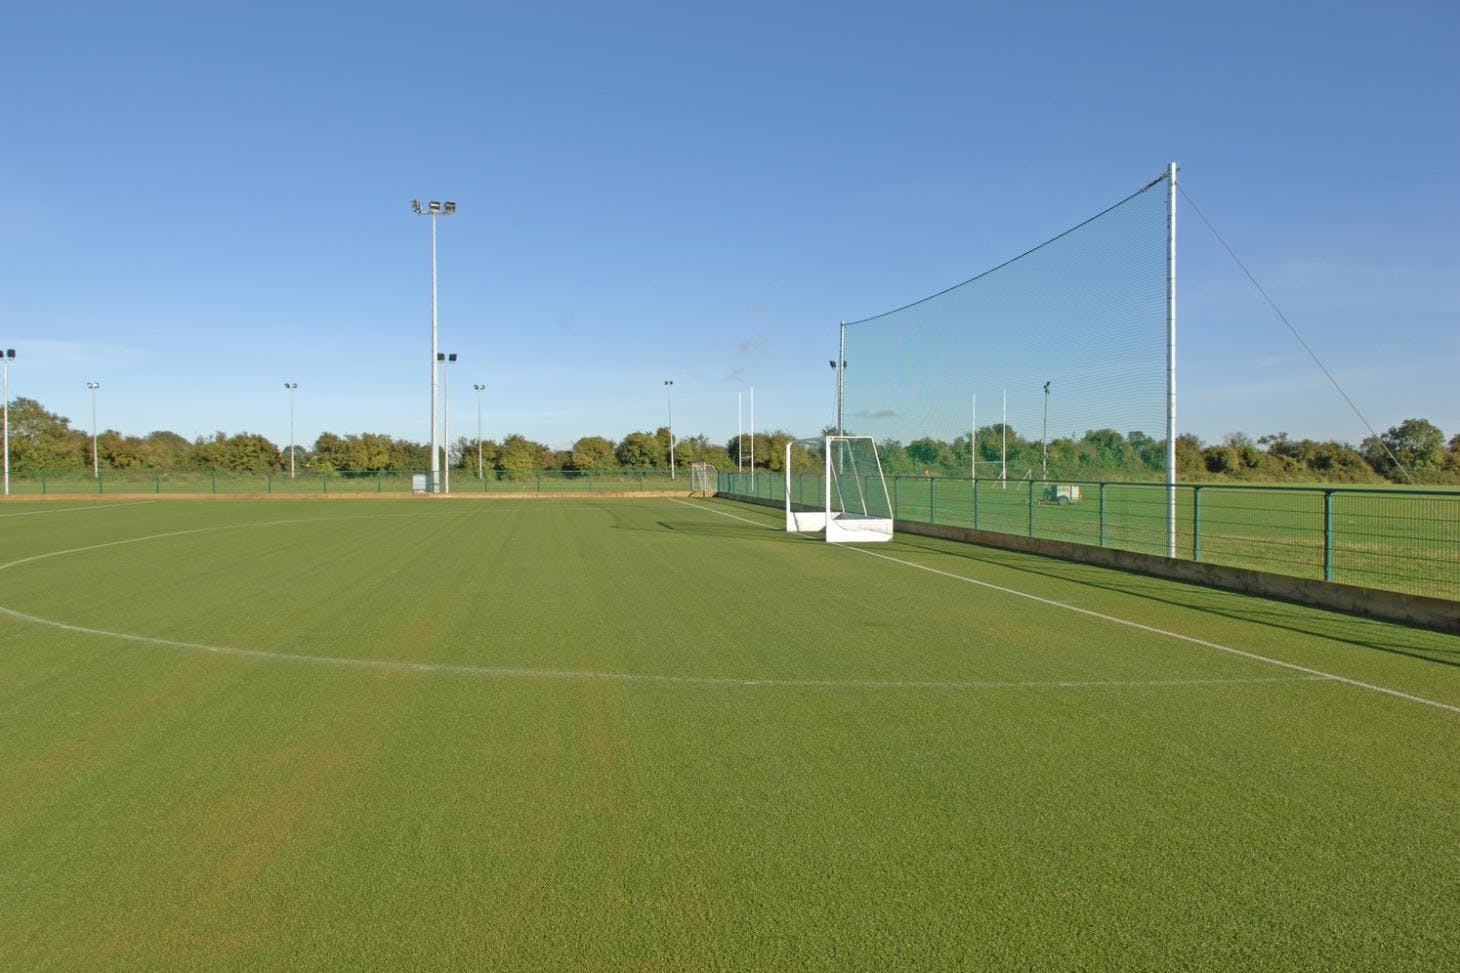 Royal College of Surgeons Sports Grounds Outdoor | Astroturf hockey pitch